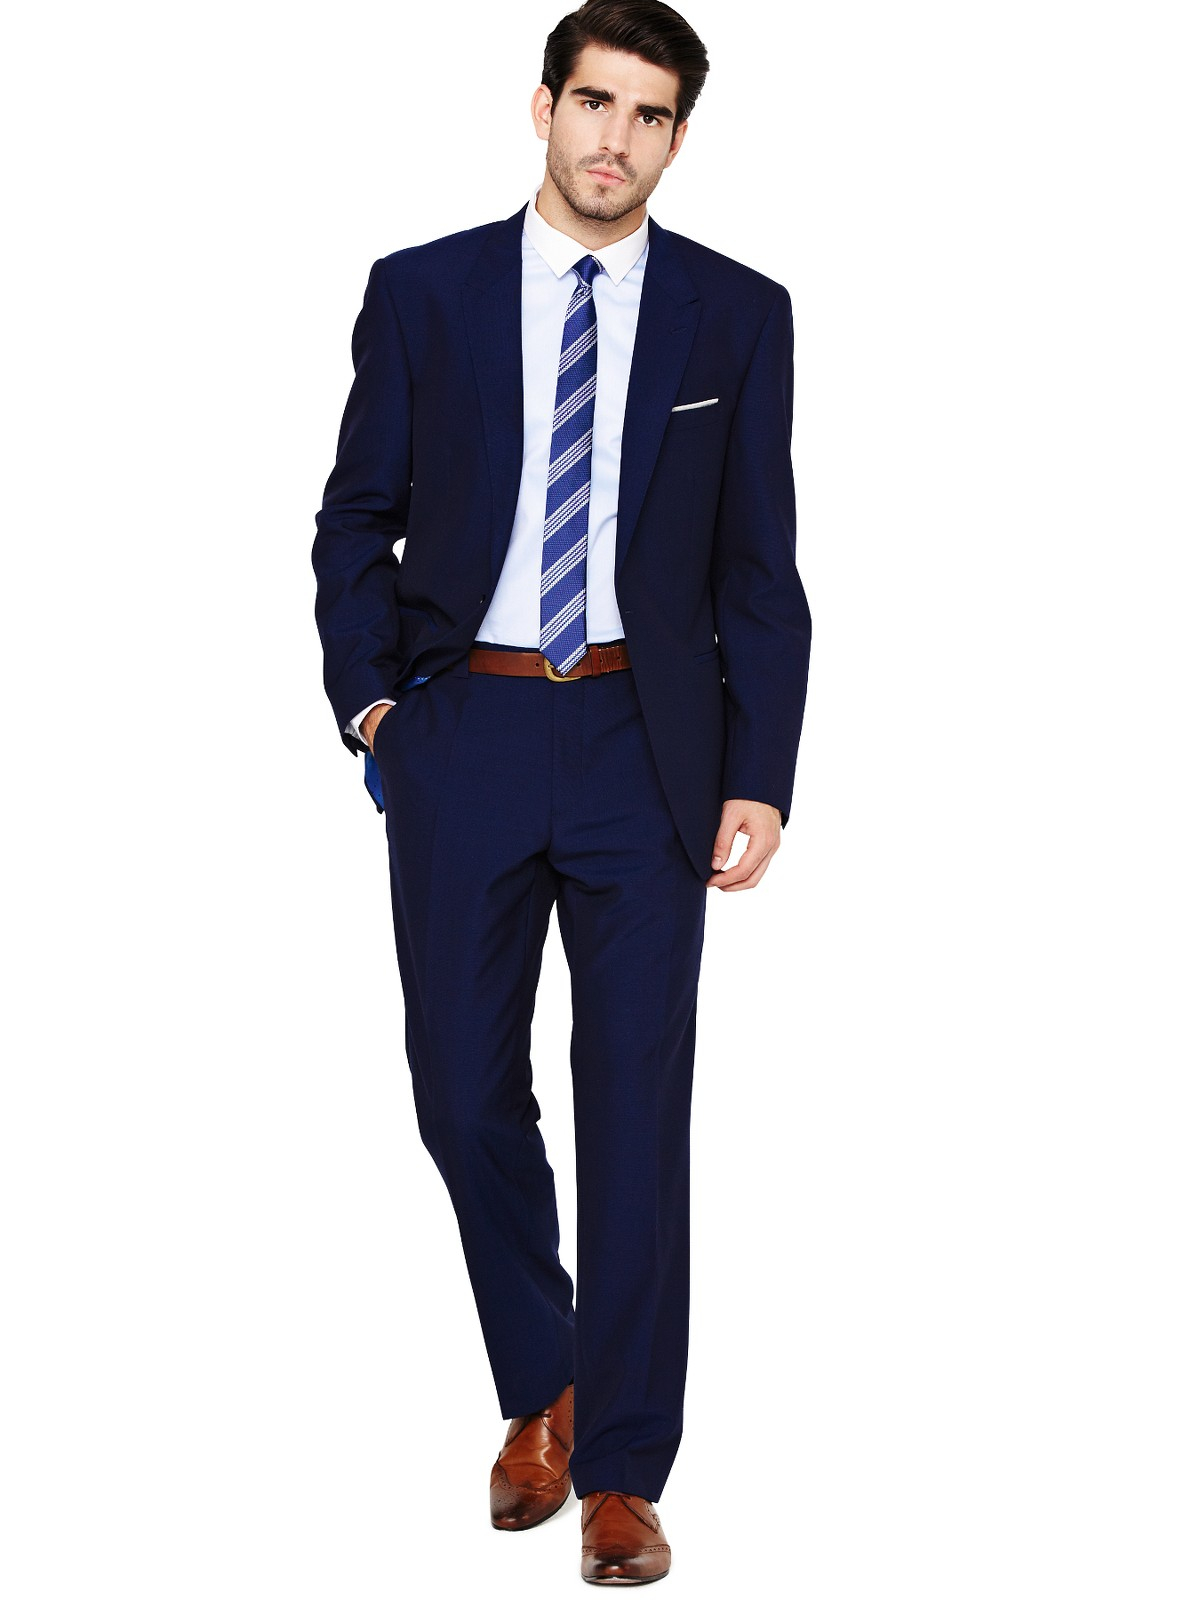 Find a two piece suit for all seasons and occasions at affordable prices. Clothing Connection Online has 2 pieces suits for men in a variety of styles and colors.